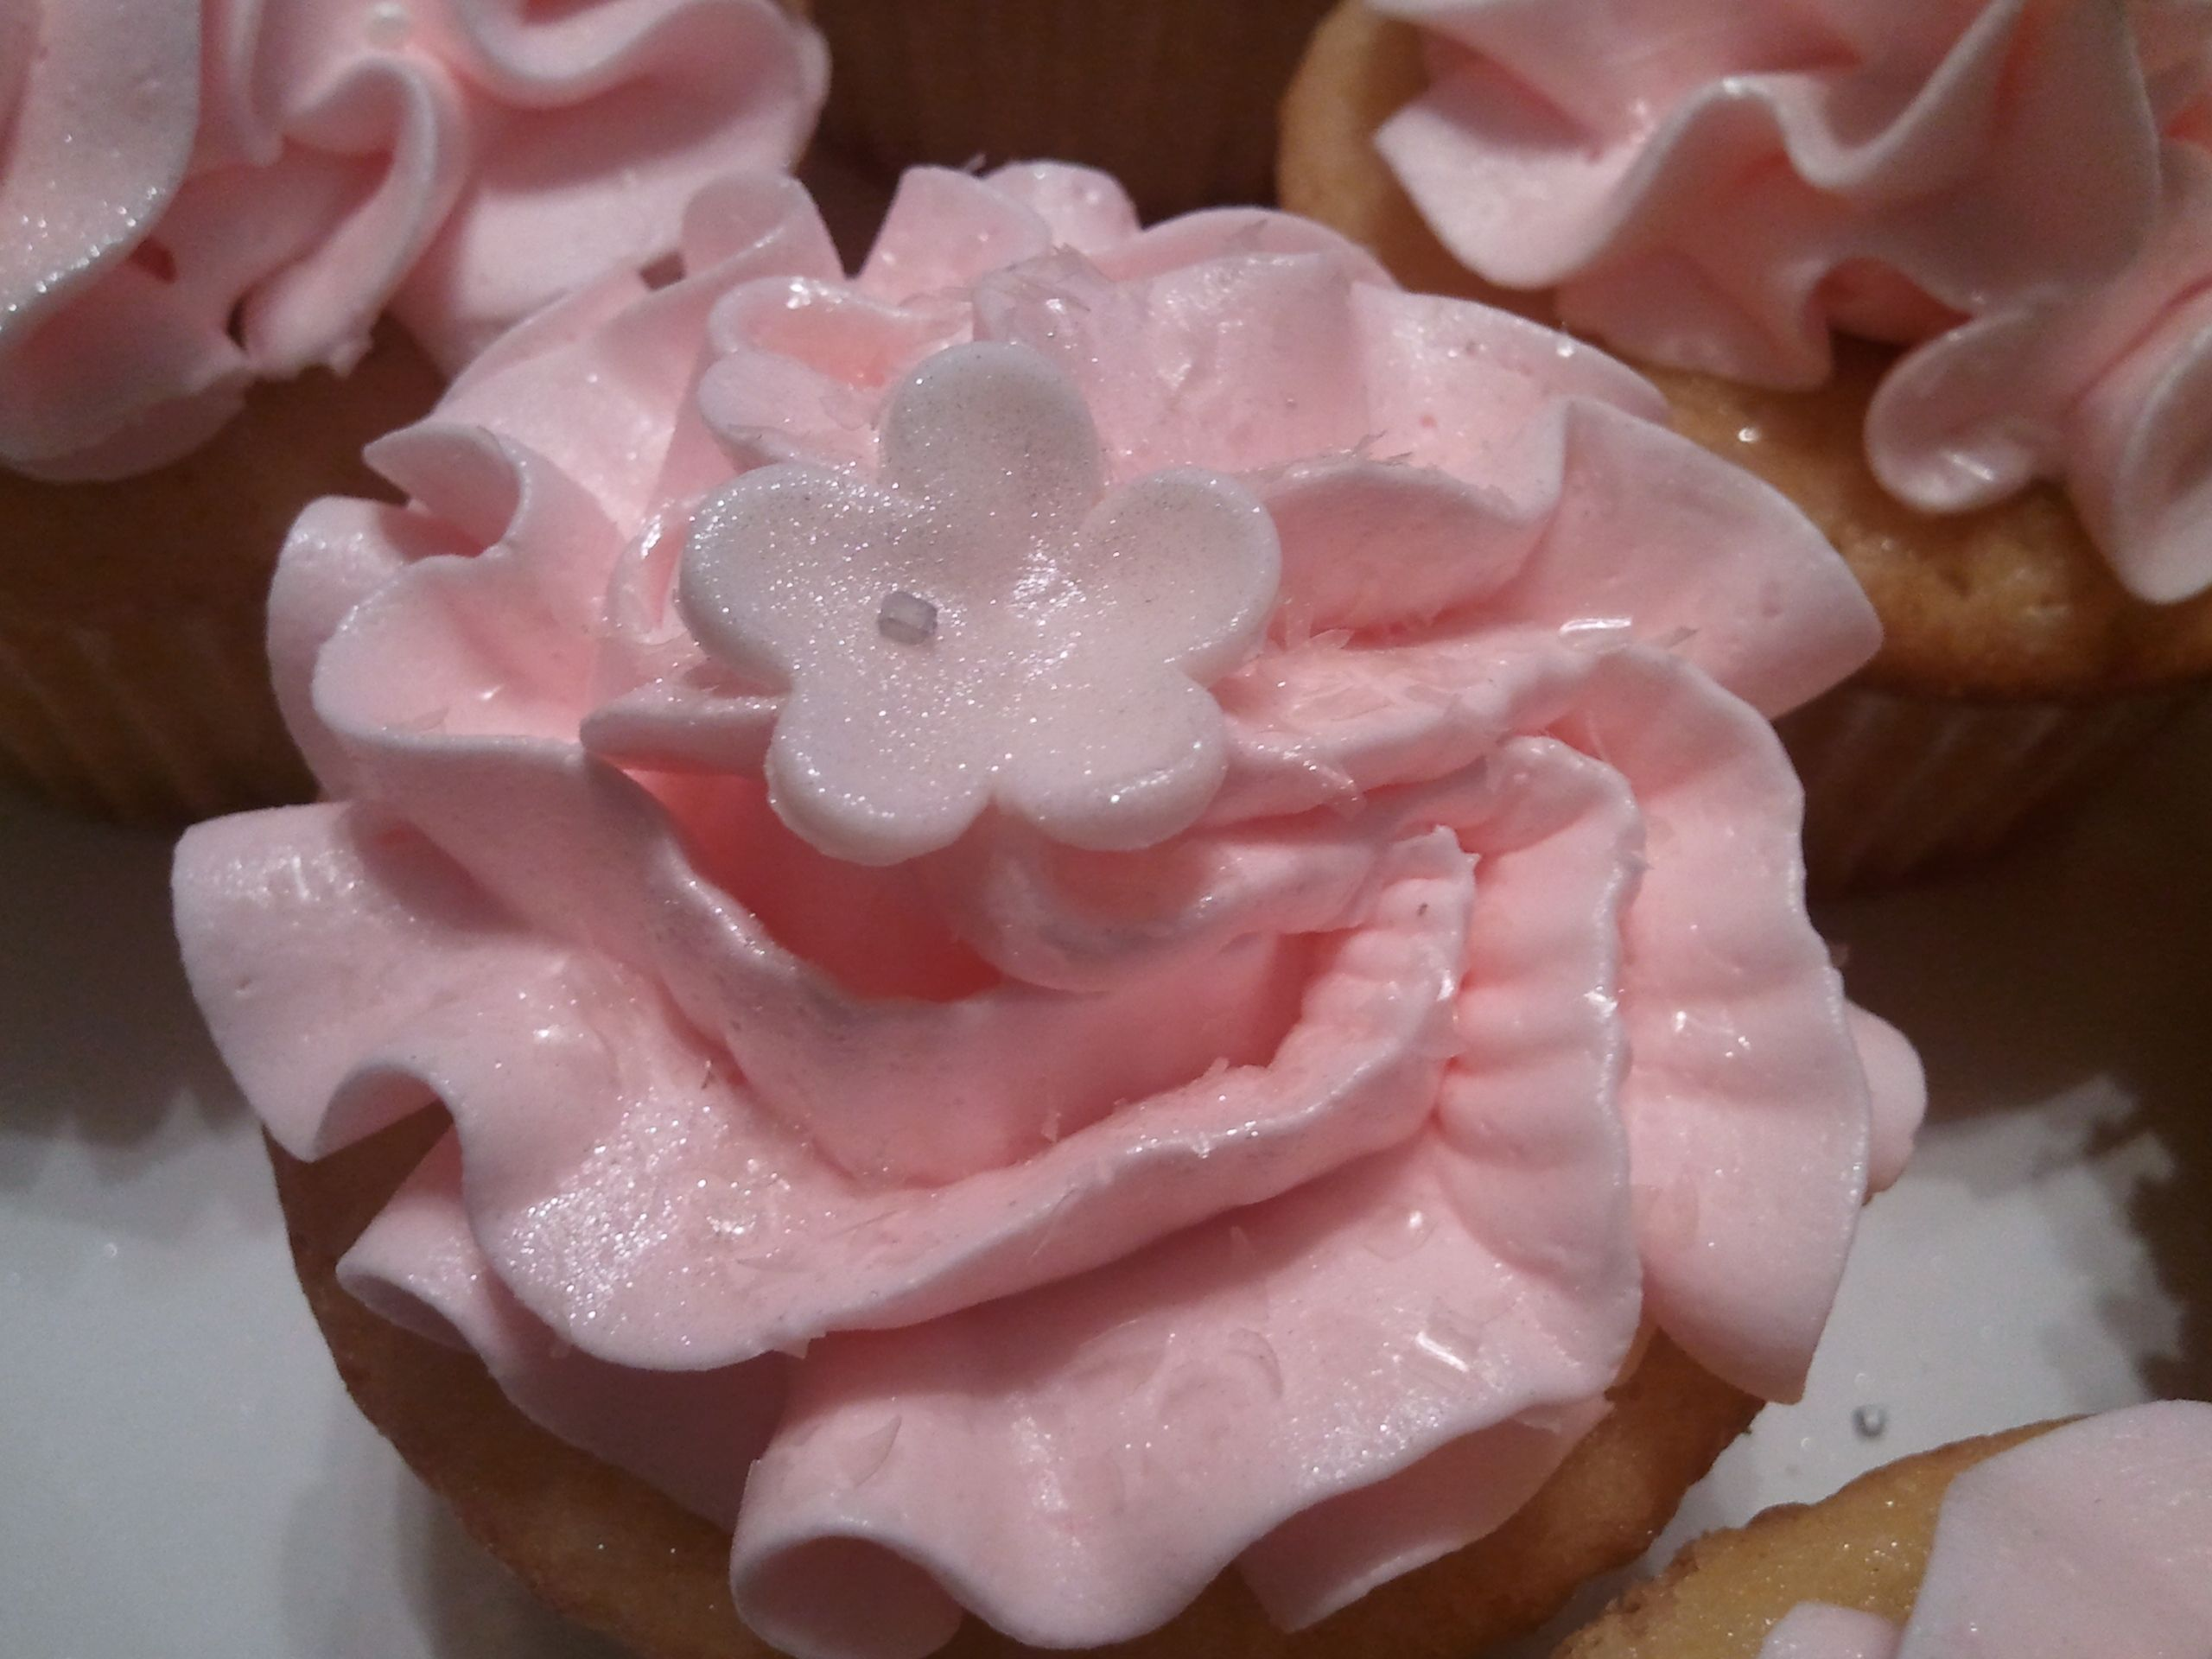 Pin By Tameka On Delectable Designs Pink Moscato Cupcakes Recipe Moscato Cupcakes Pink Moscato